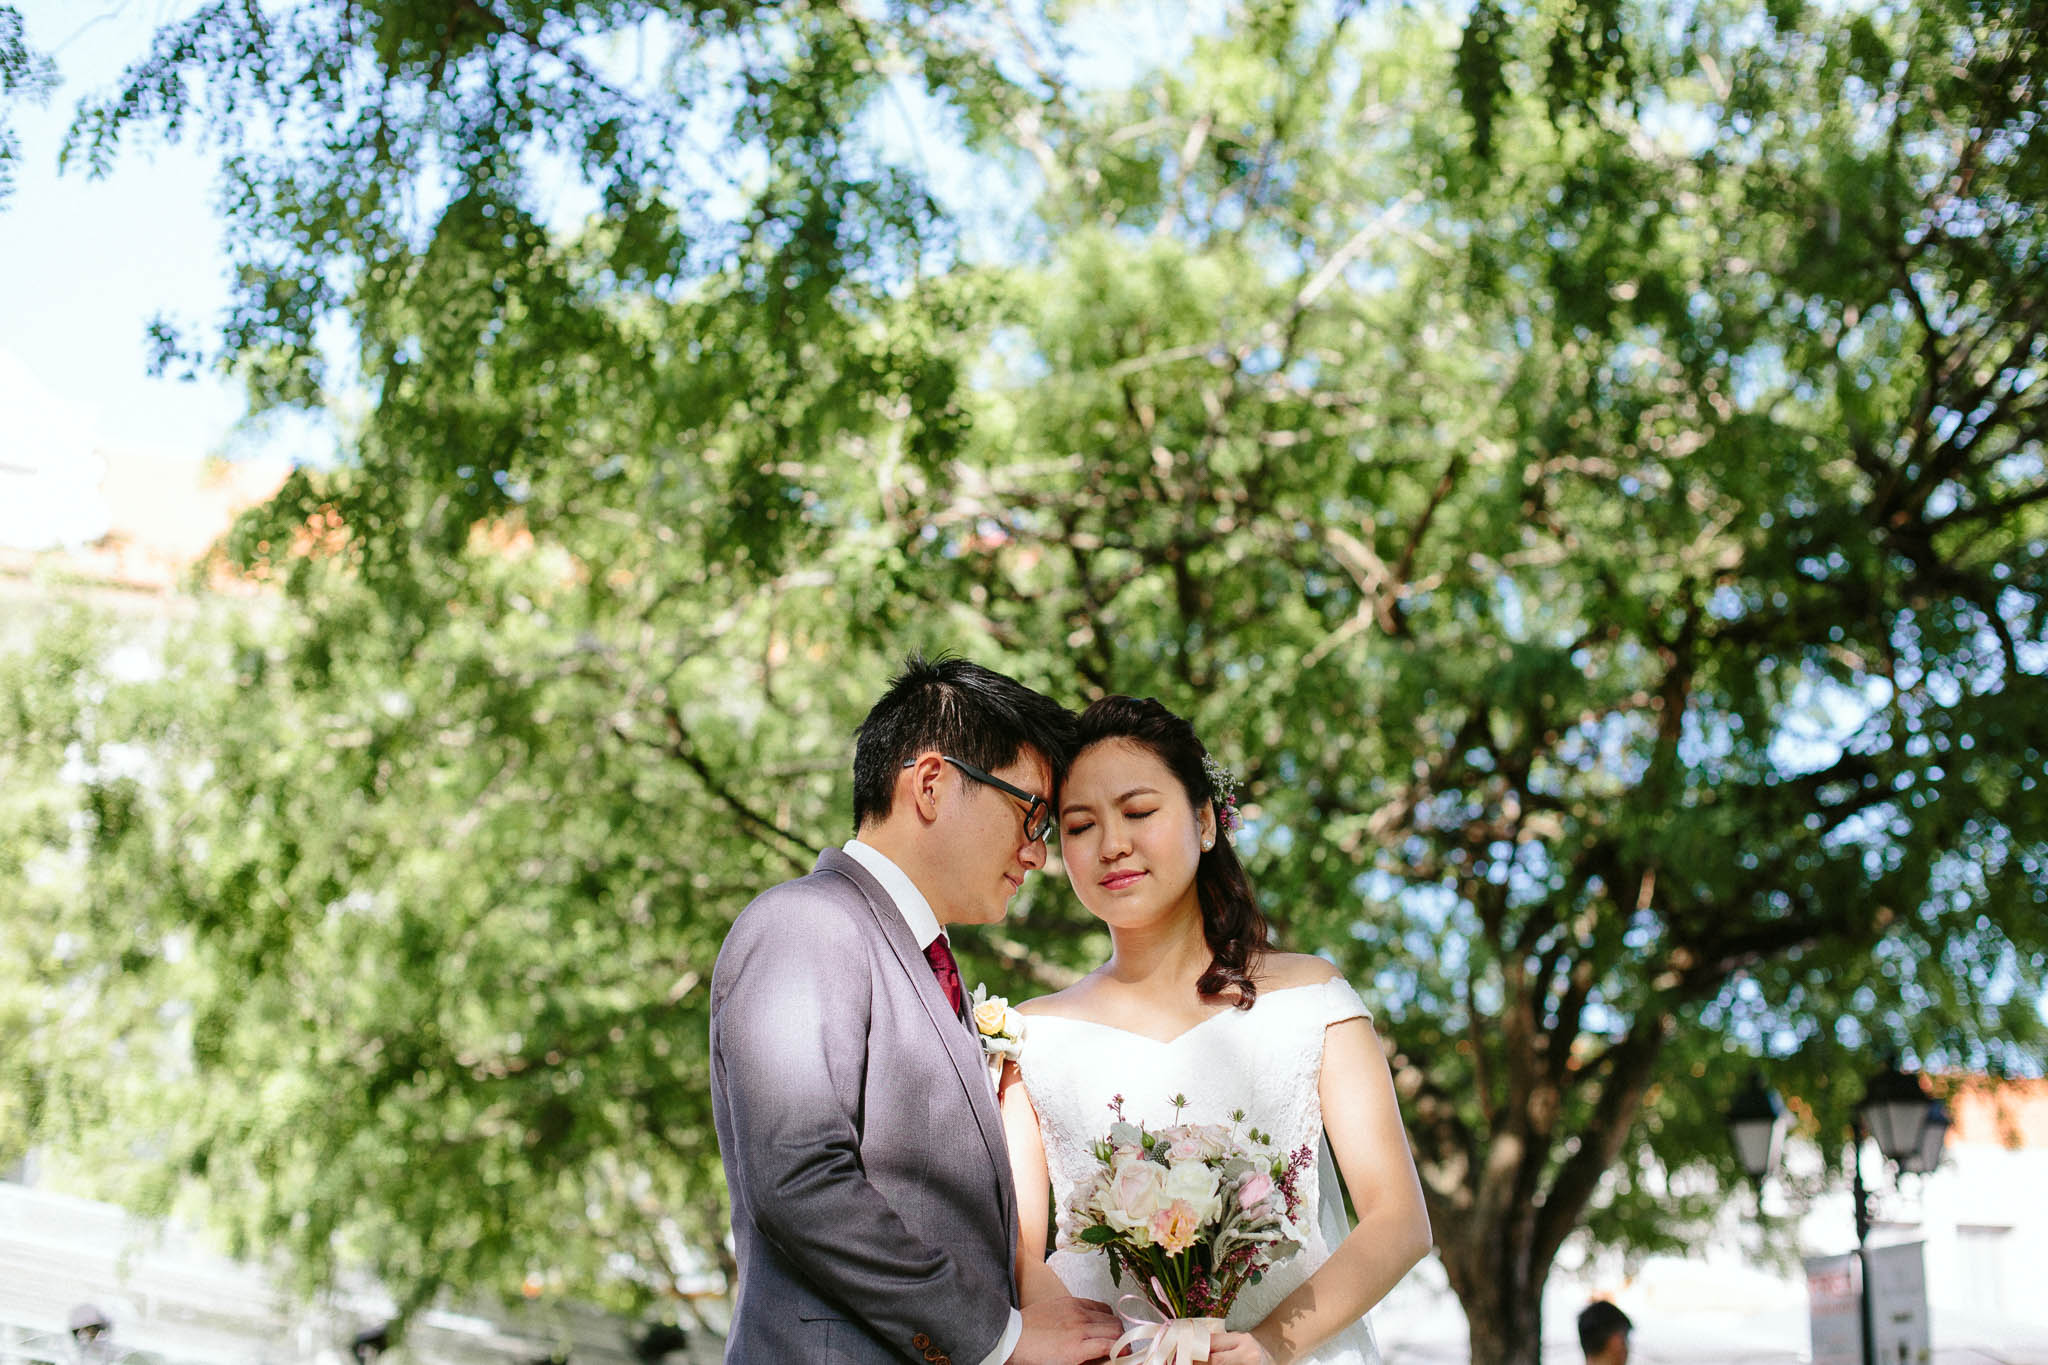 singapore-wedding-photographer-we-made-these-2016-selects-061.jpg